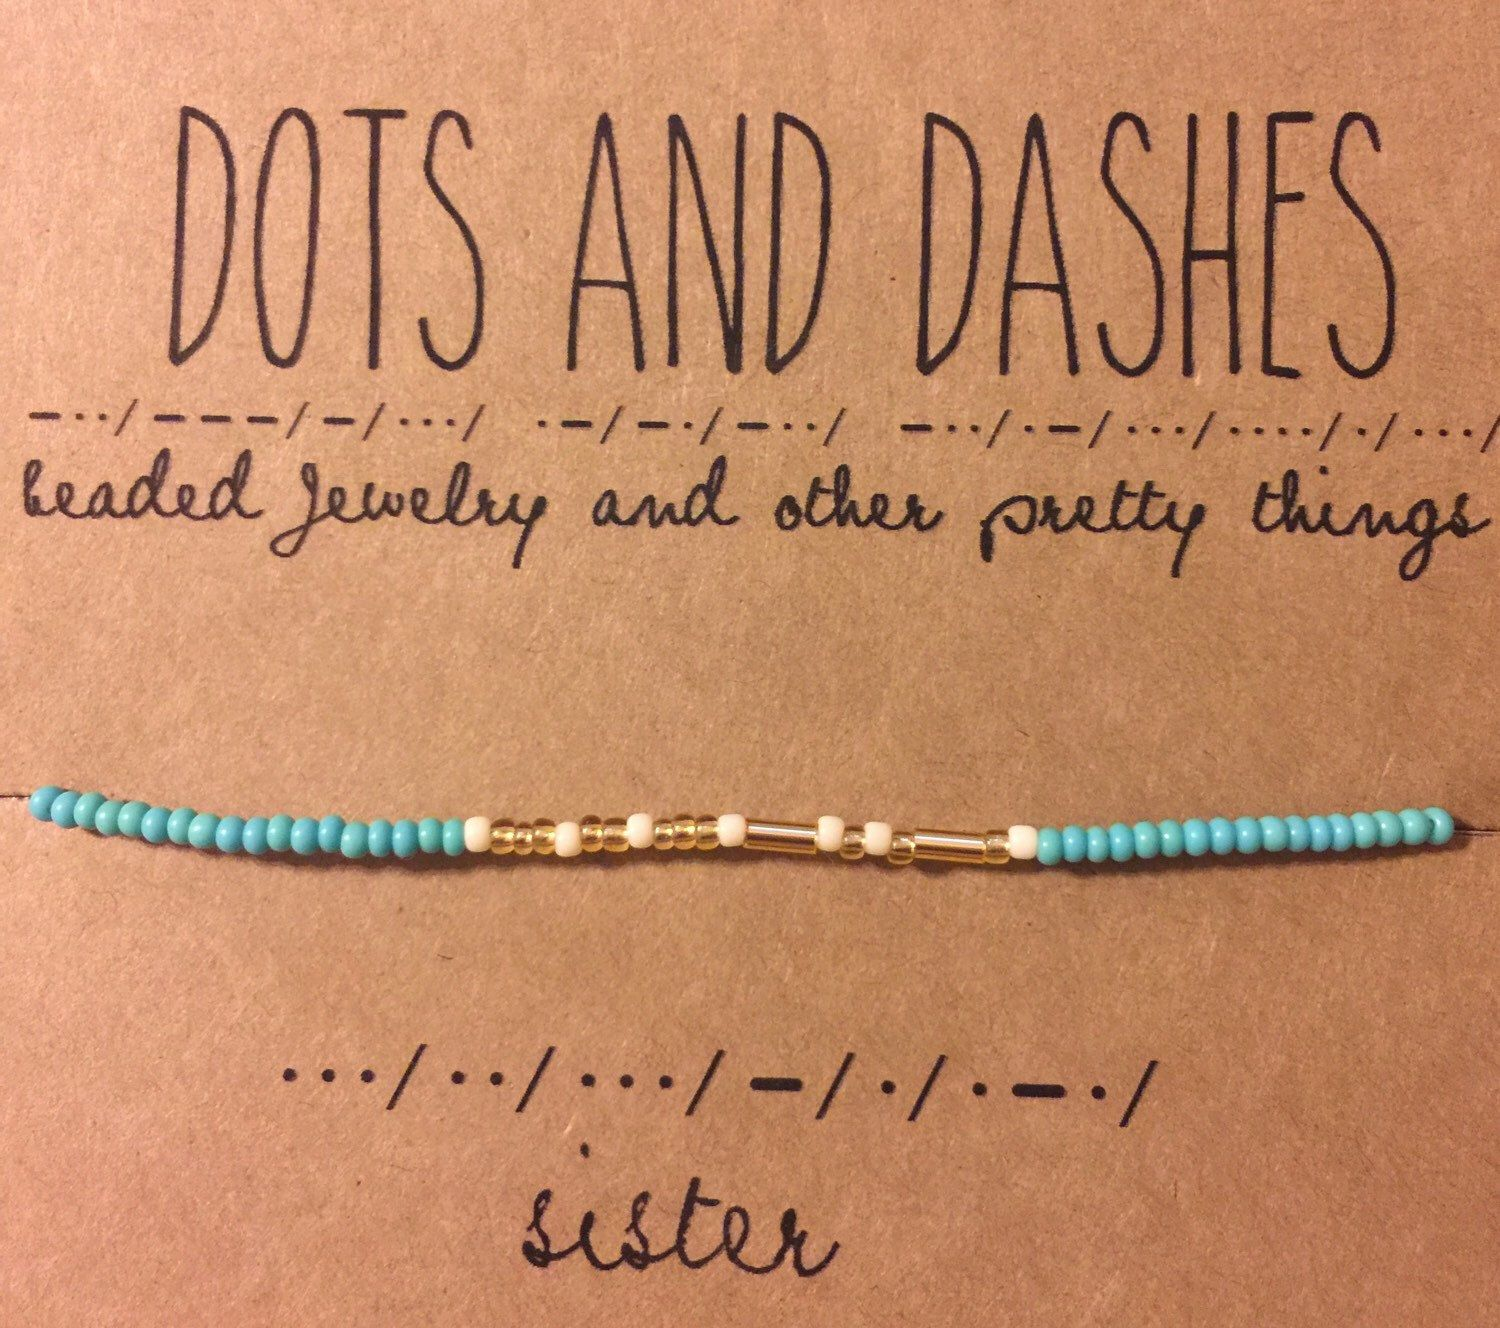 Pin By Hartt Lang On Dots Amp Dashes Sister Bracelet